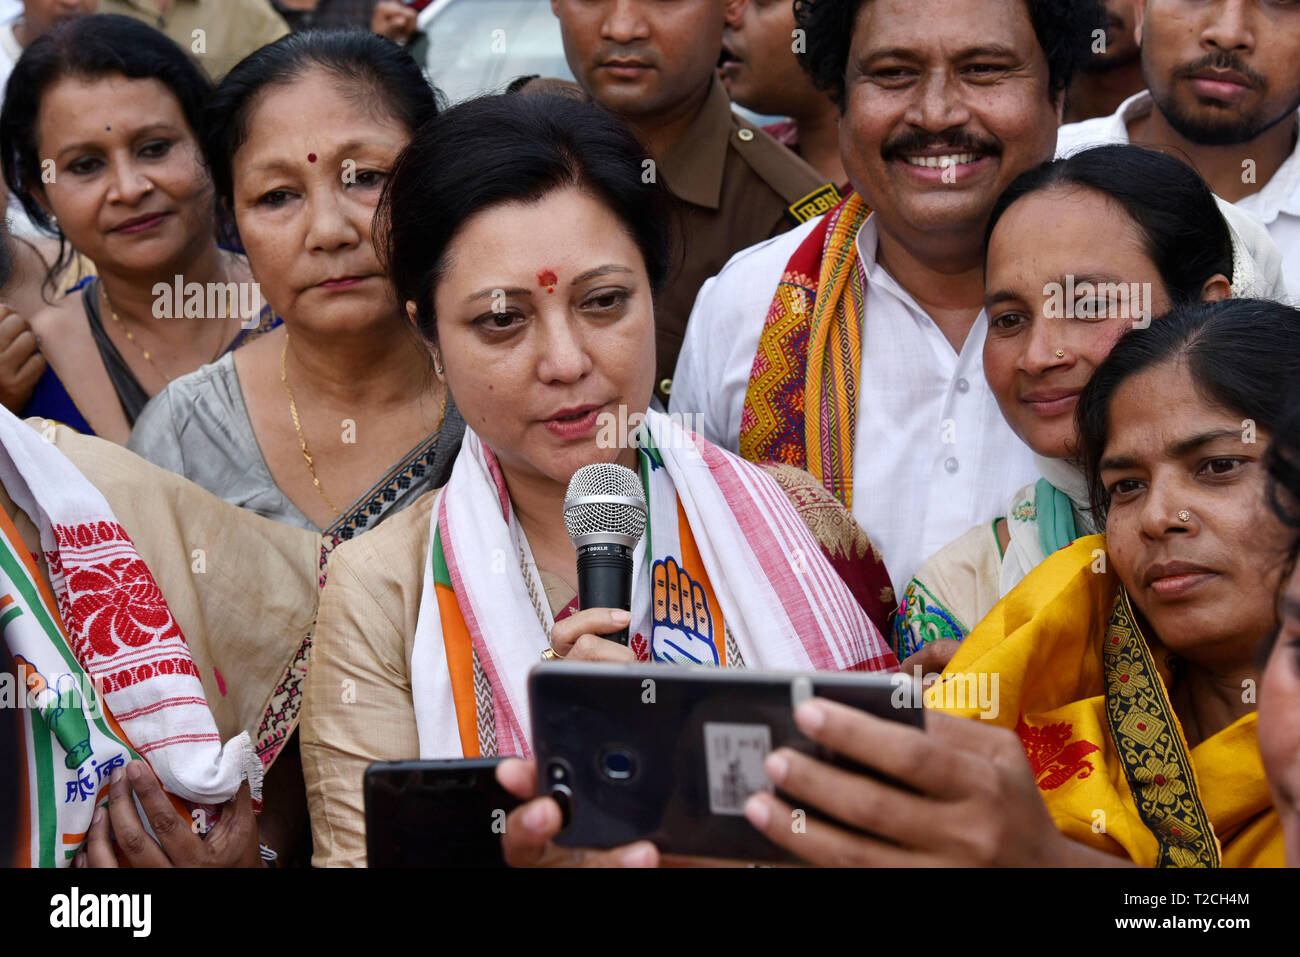 Guwahati, India. 1st Apr 2019. Congress party candidate from Guwahati constituency Bobeeta Sarma addressing to the supporters after the nomination in Guwahati, Monday, April 1, 2019.  Credit: David Talukdar/Alamy Live News - Stock Image